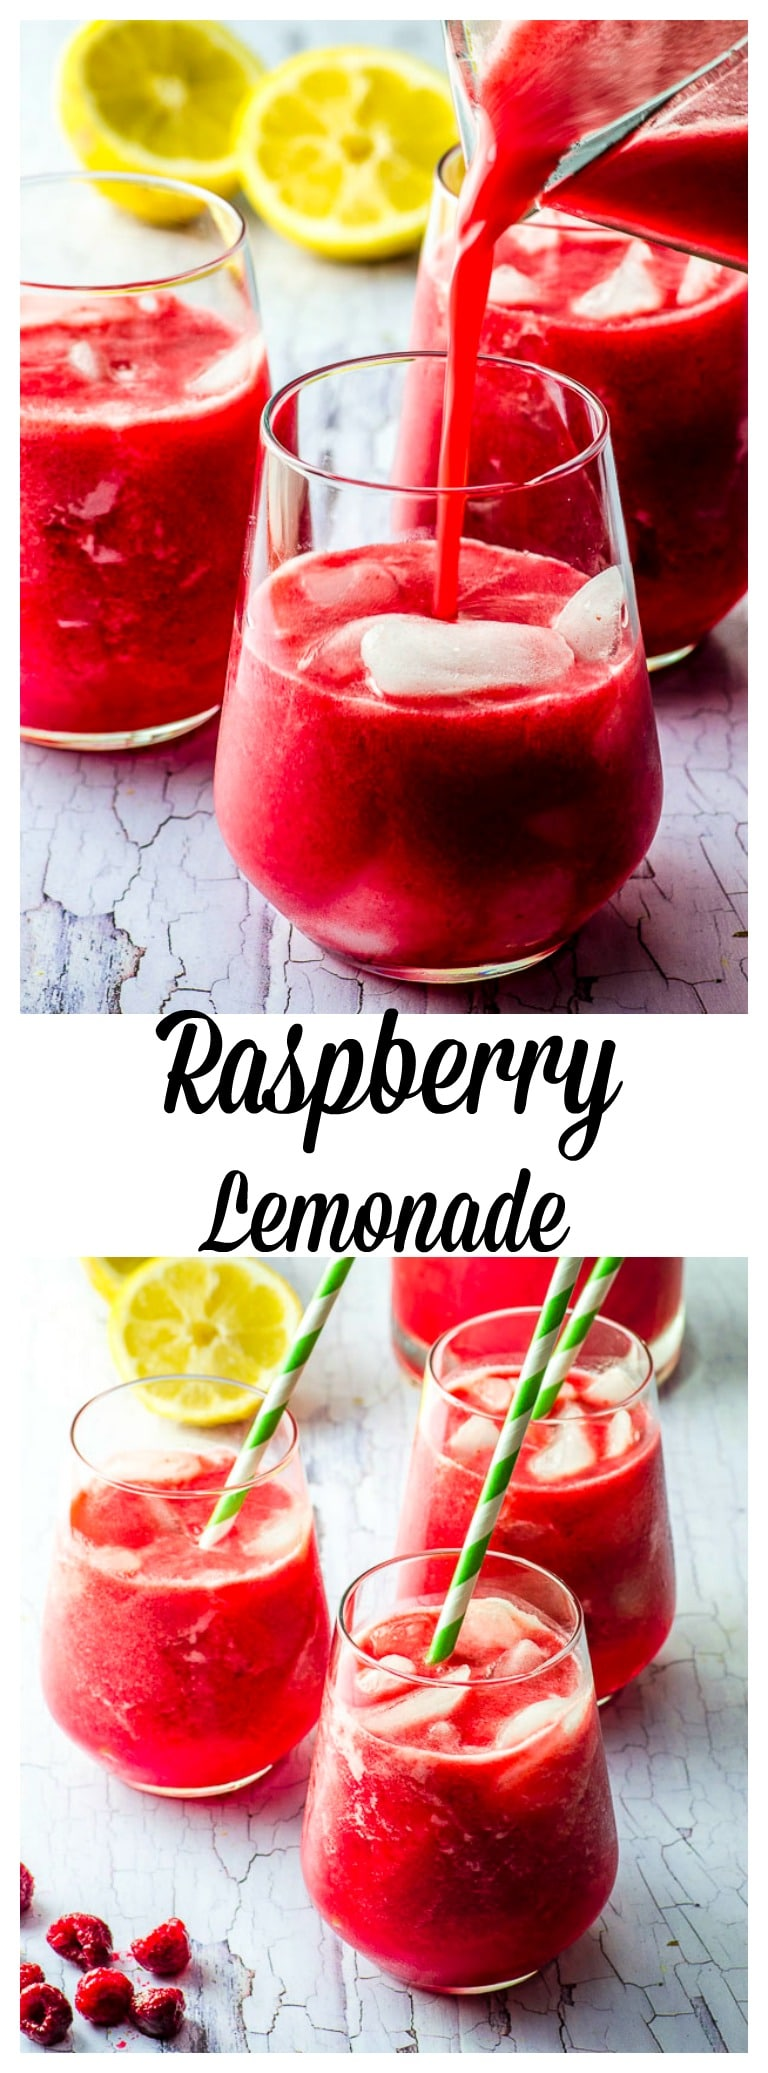 This Summer, make a batch of our Raspberry Lemonade – a sophisticated thirst-quencher that pairs naturally-sweetened lemonade with juicy red raspberries for a delicious Summer drink enjoyed as is, or with a splash of bourbon! #drink #summer #lemonade #raspberry #Naturally Sweetened #dates #vegan